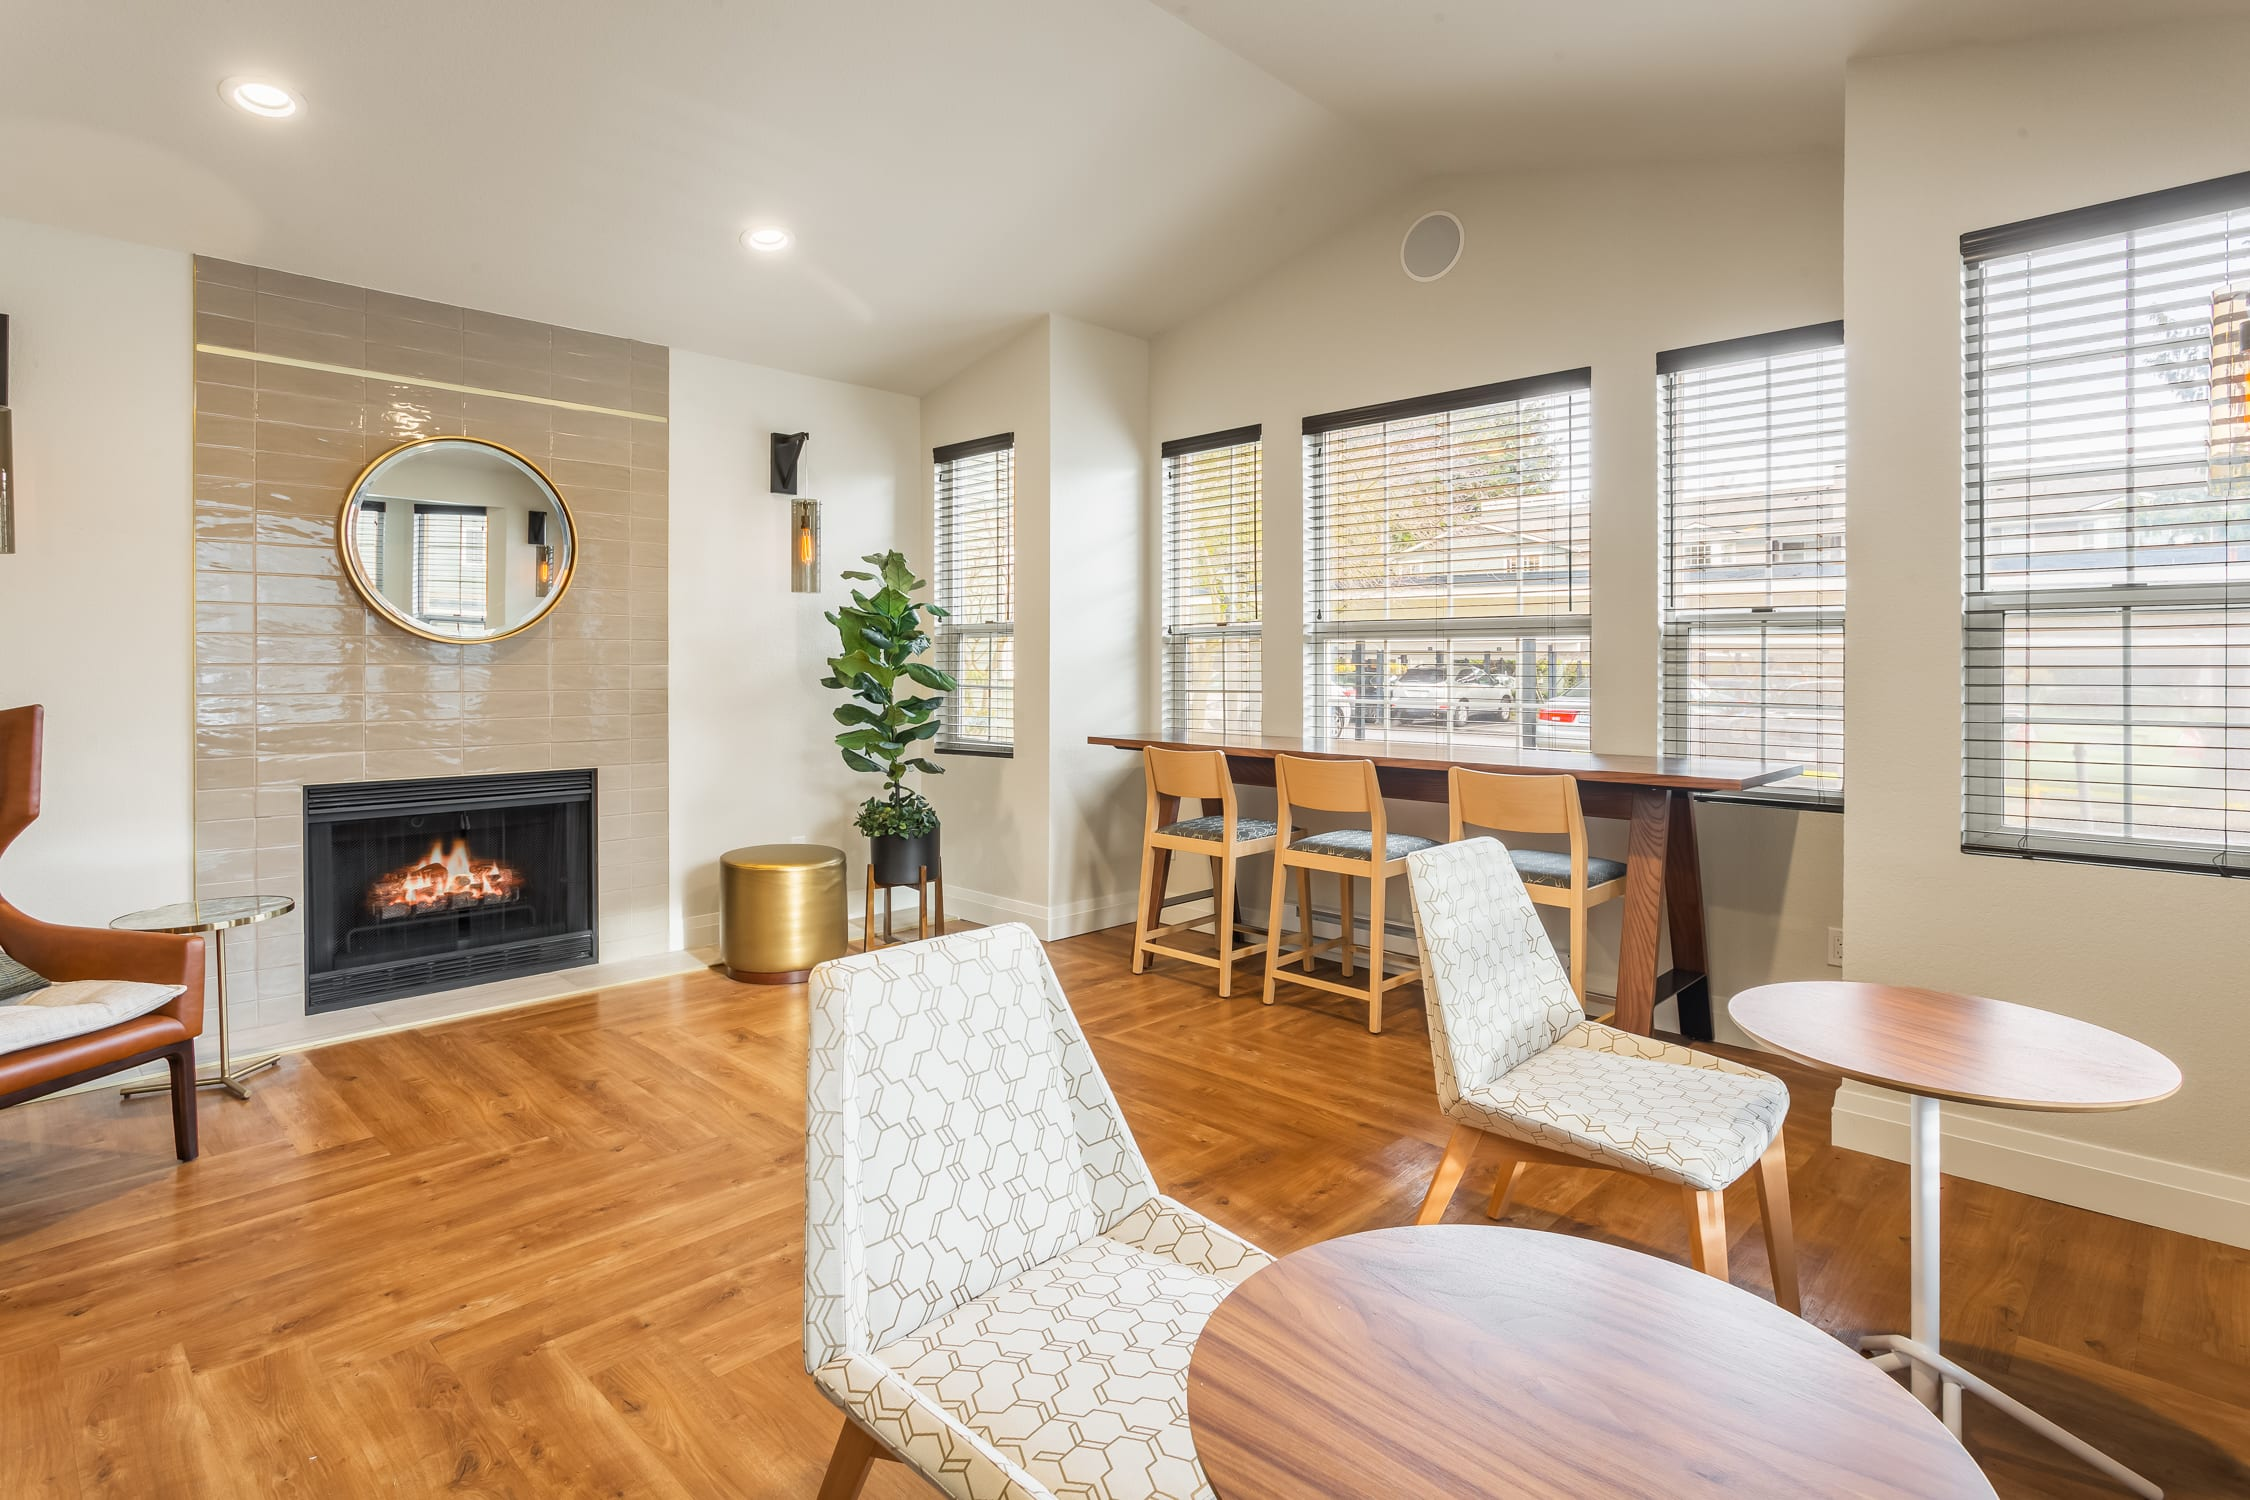 The common area at Haller Post Apartments has a fireplace and places to relax.